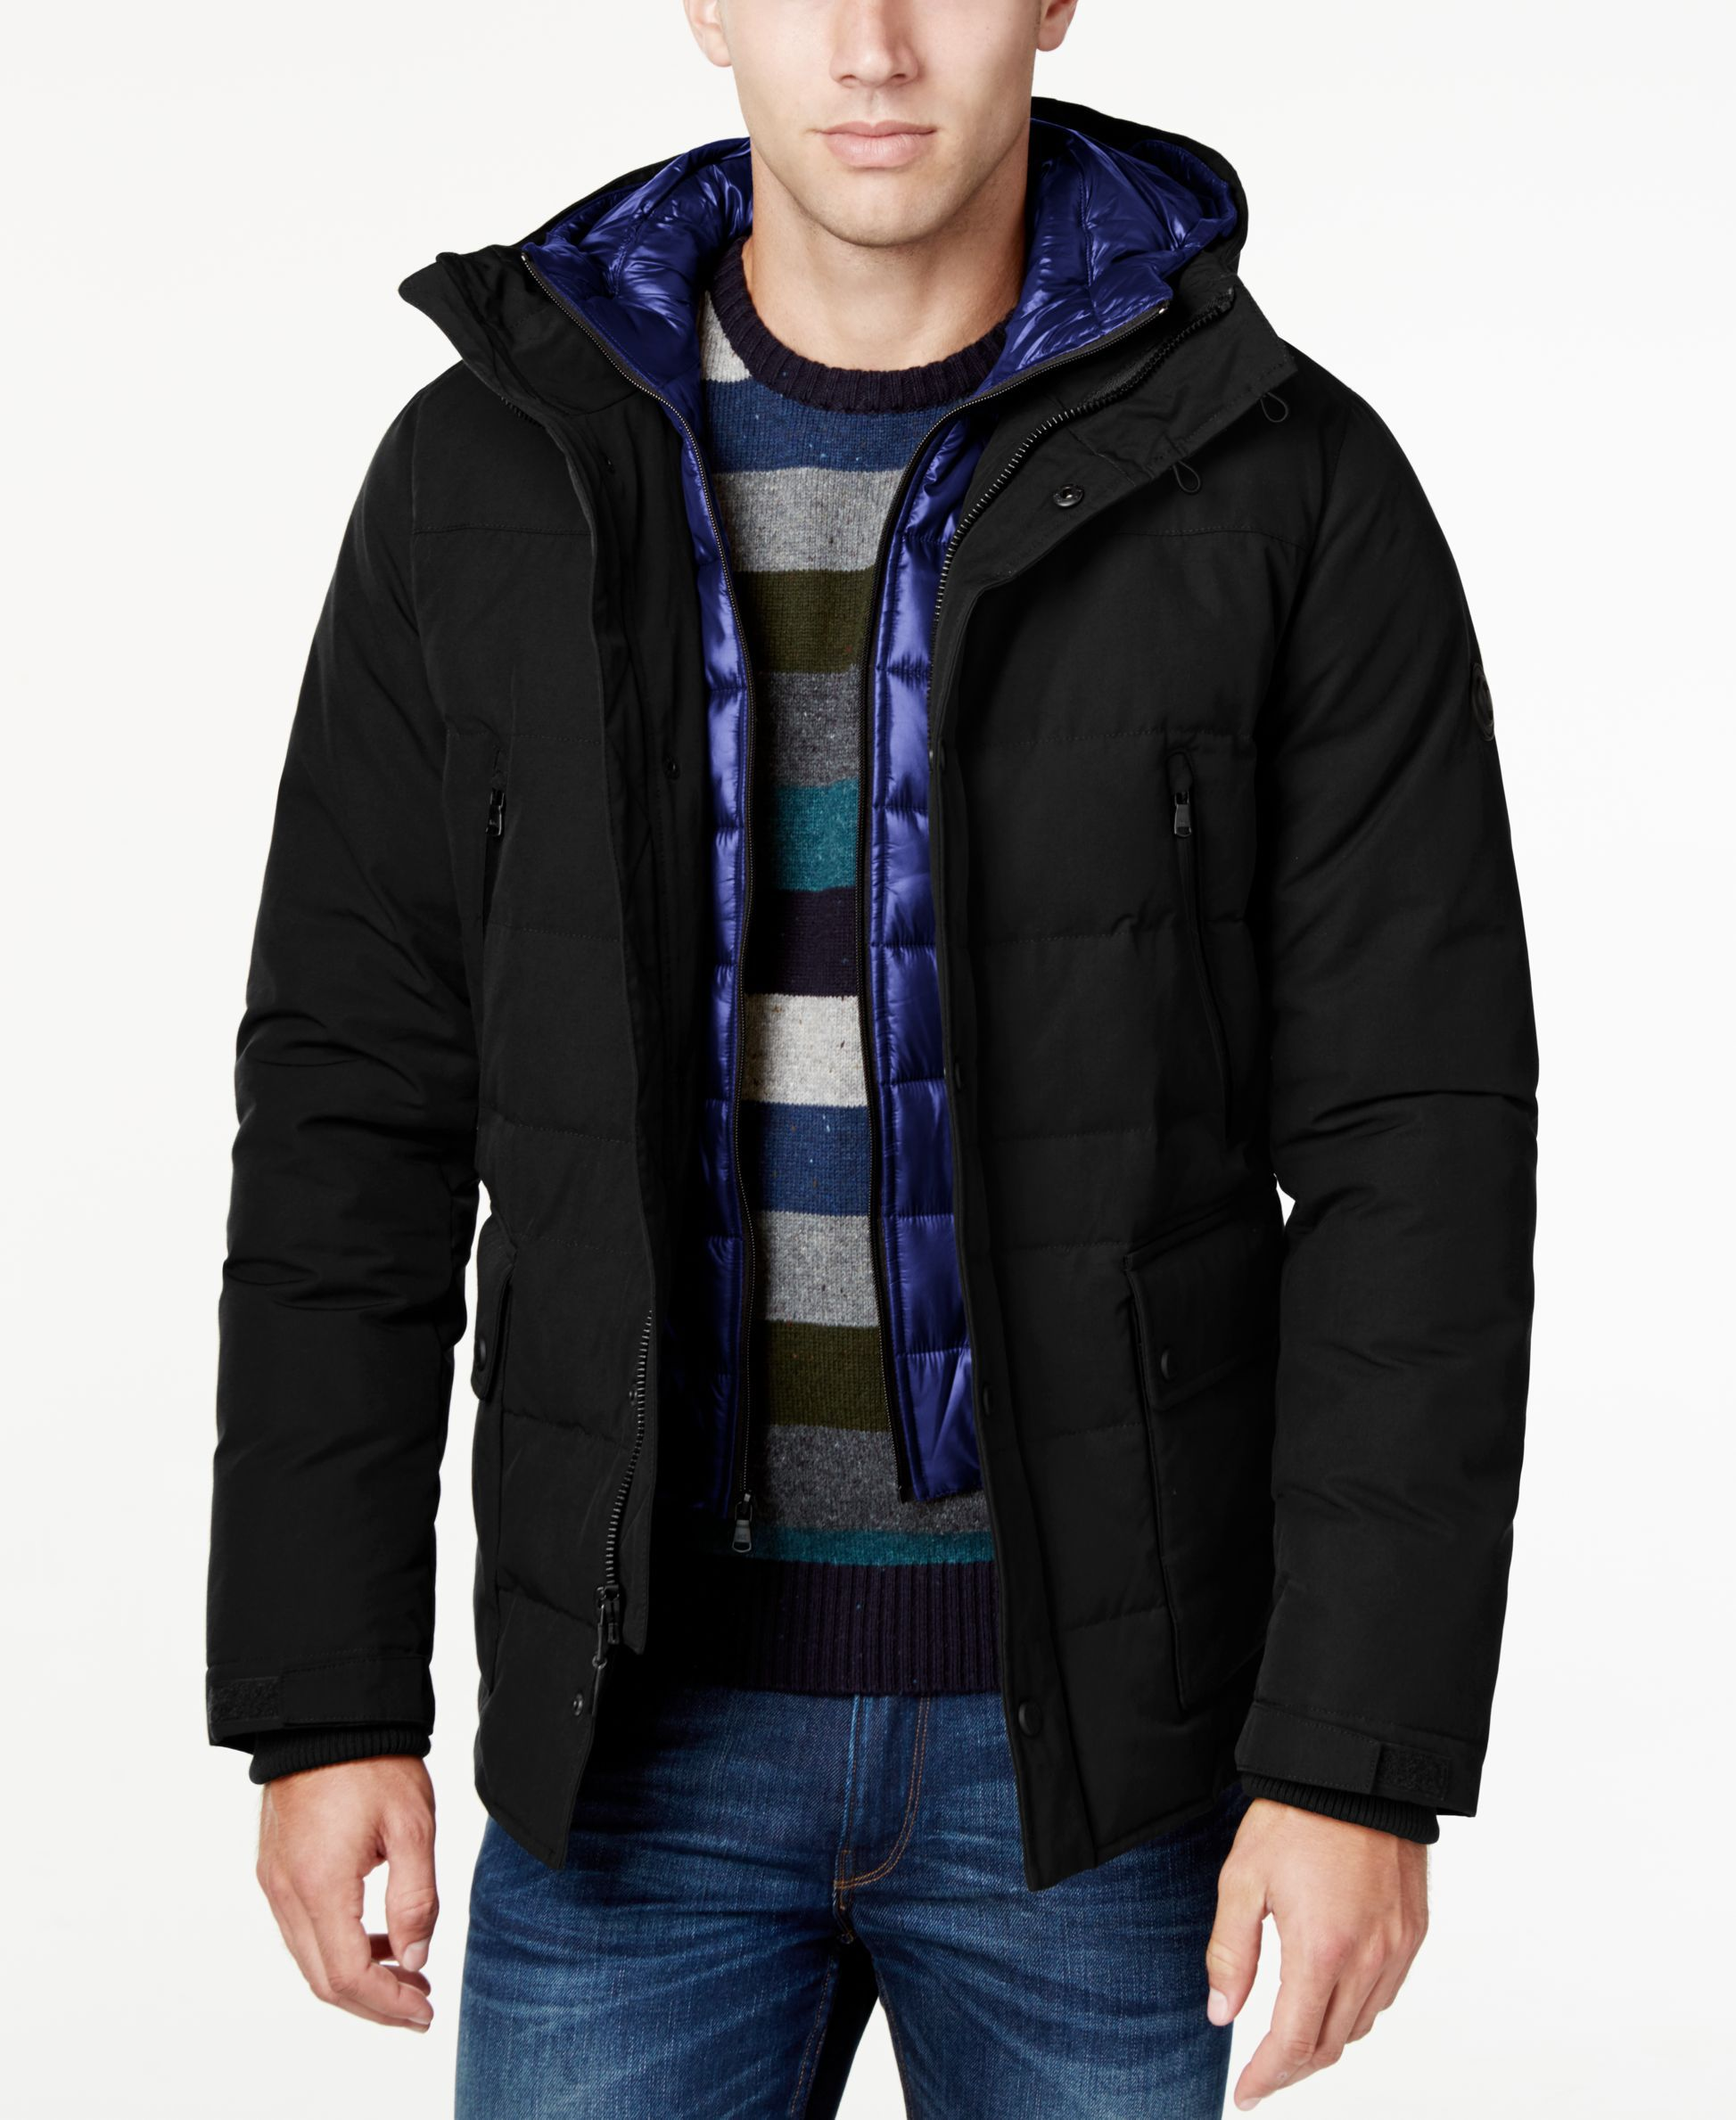 97f1fd788a9 Michael Michael Kors Men s Hooded Puffer Coat with Attached Bib ...